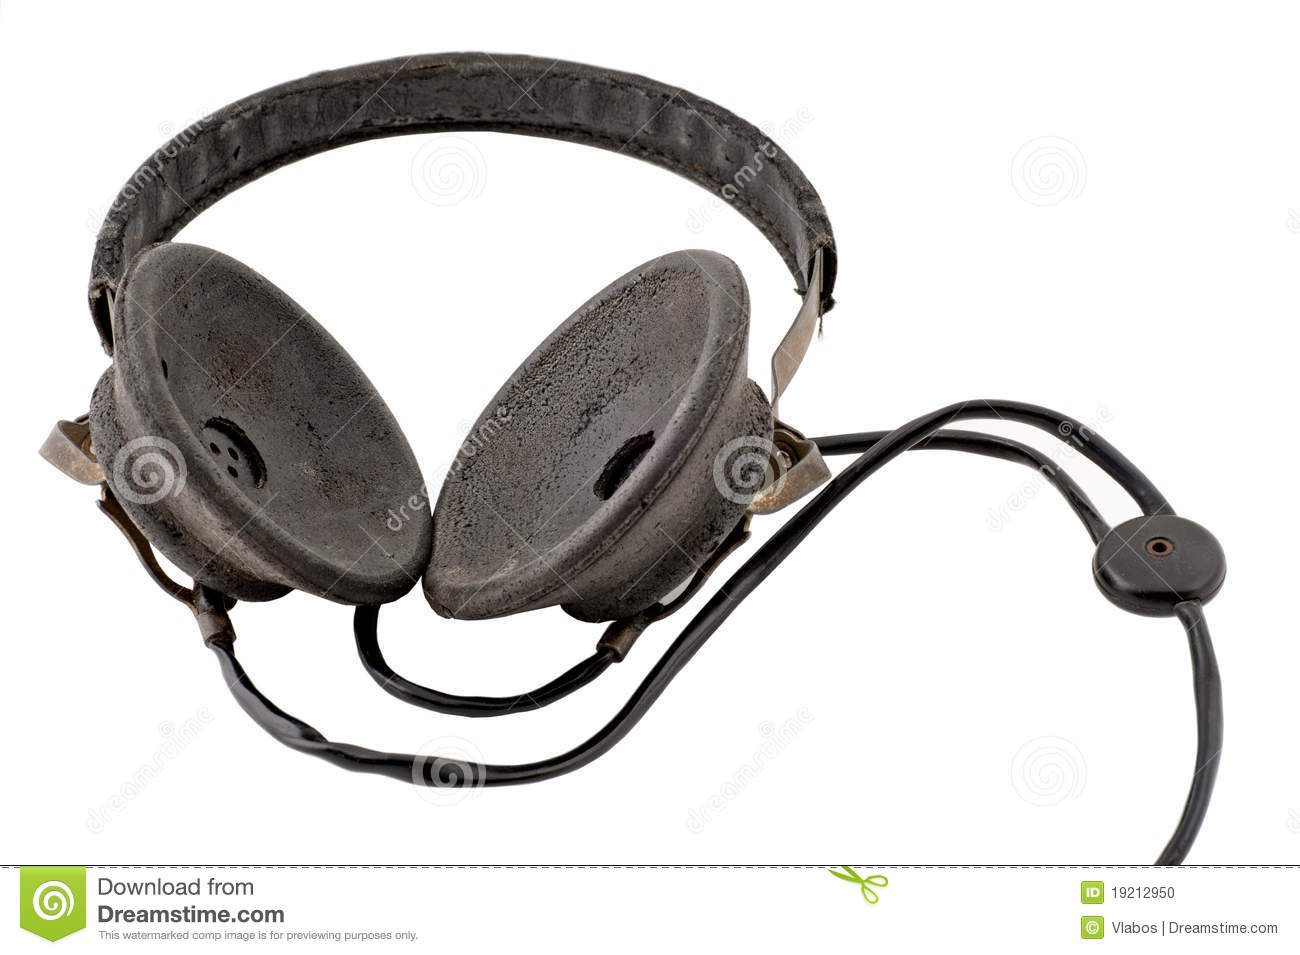 Old Headphones Stock Photo - Image: 19212950